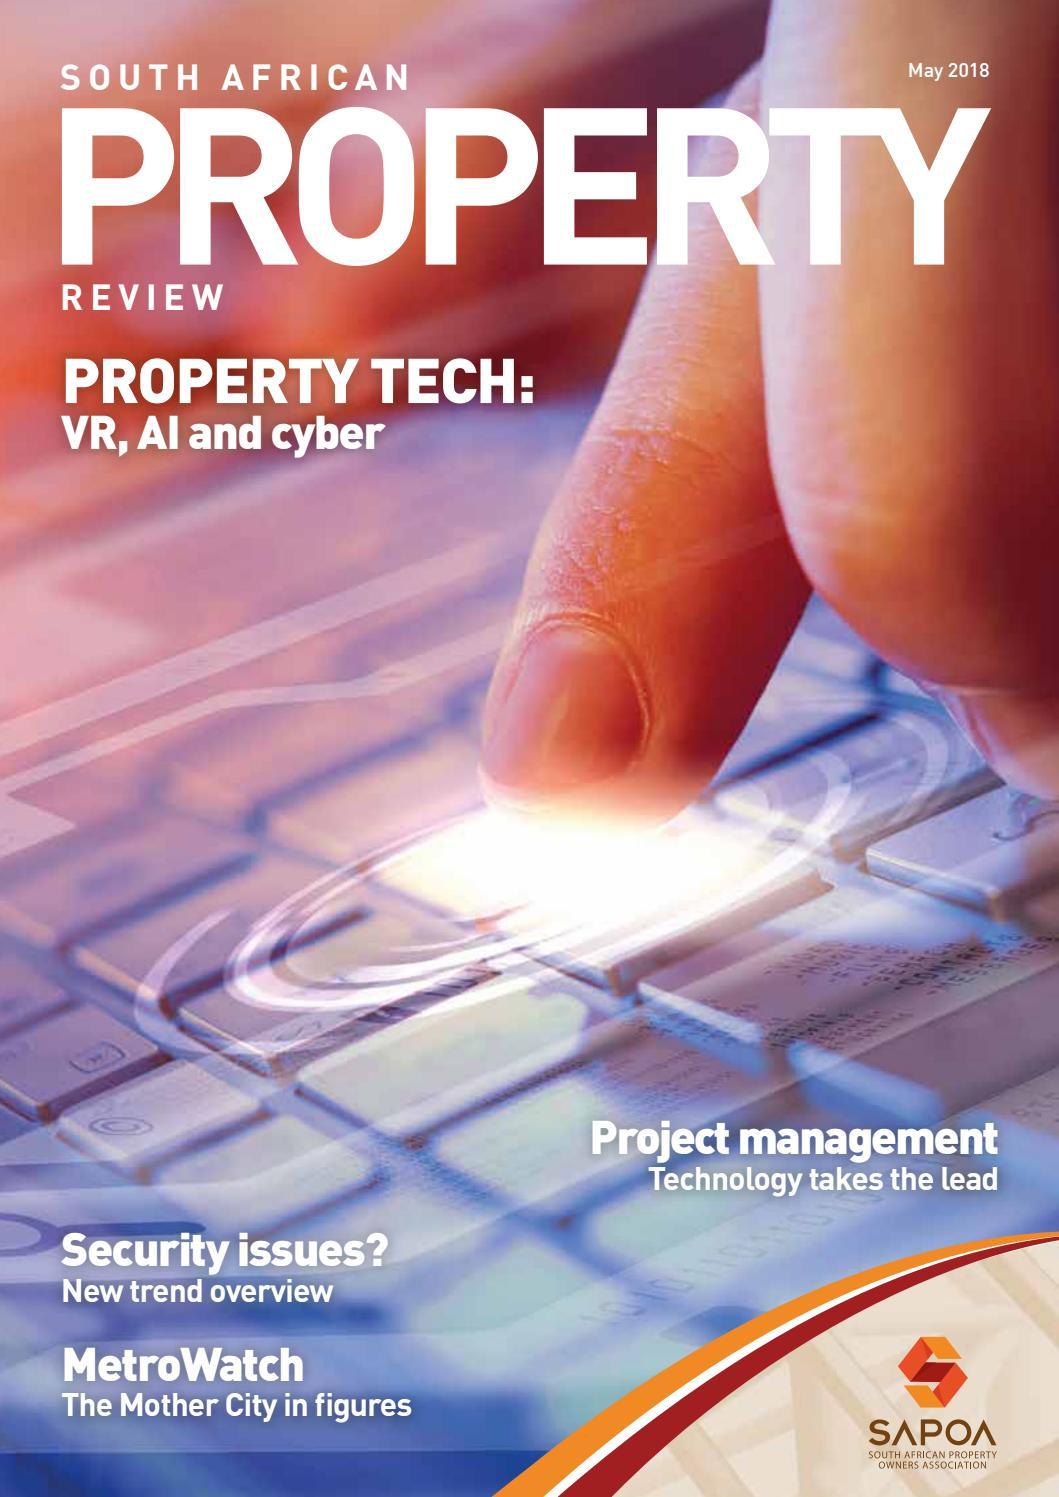 South African Property Review May 2018 by SAPOA - issuu